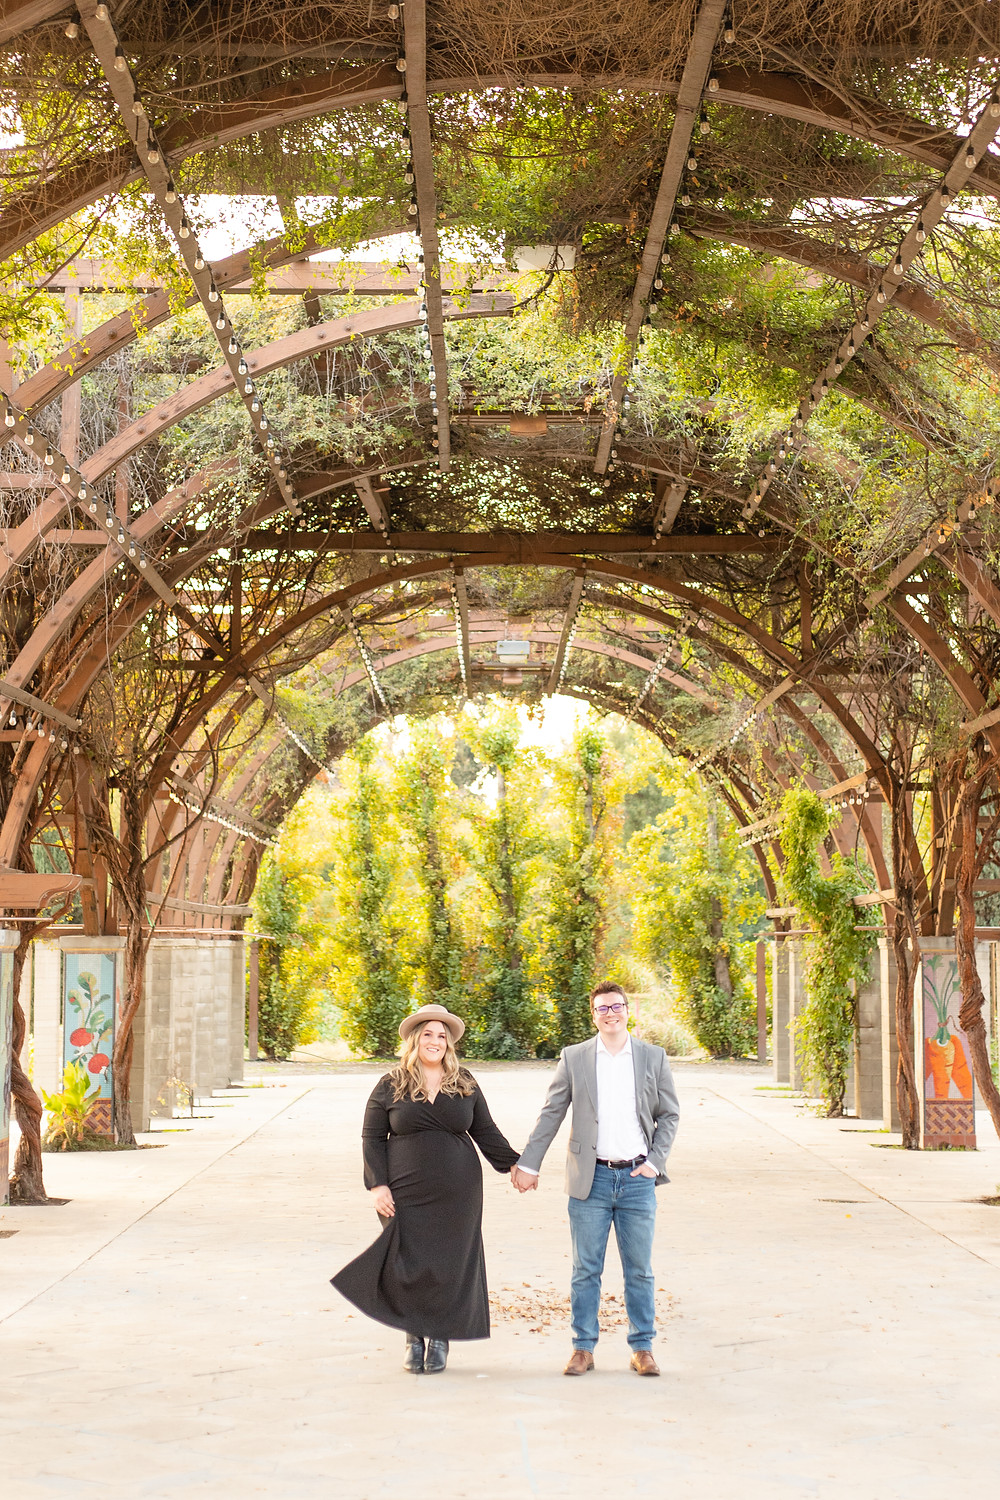 A couples lifestlye session by Ashley Norton Photography in Clovis, CA.